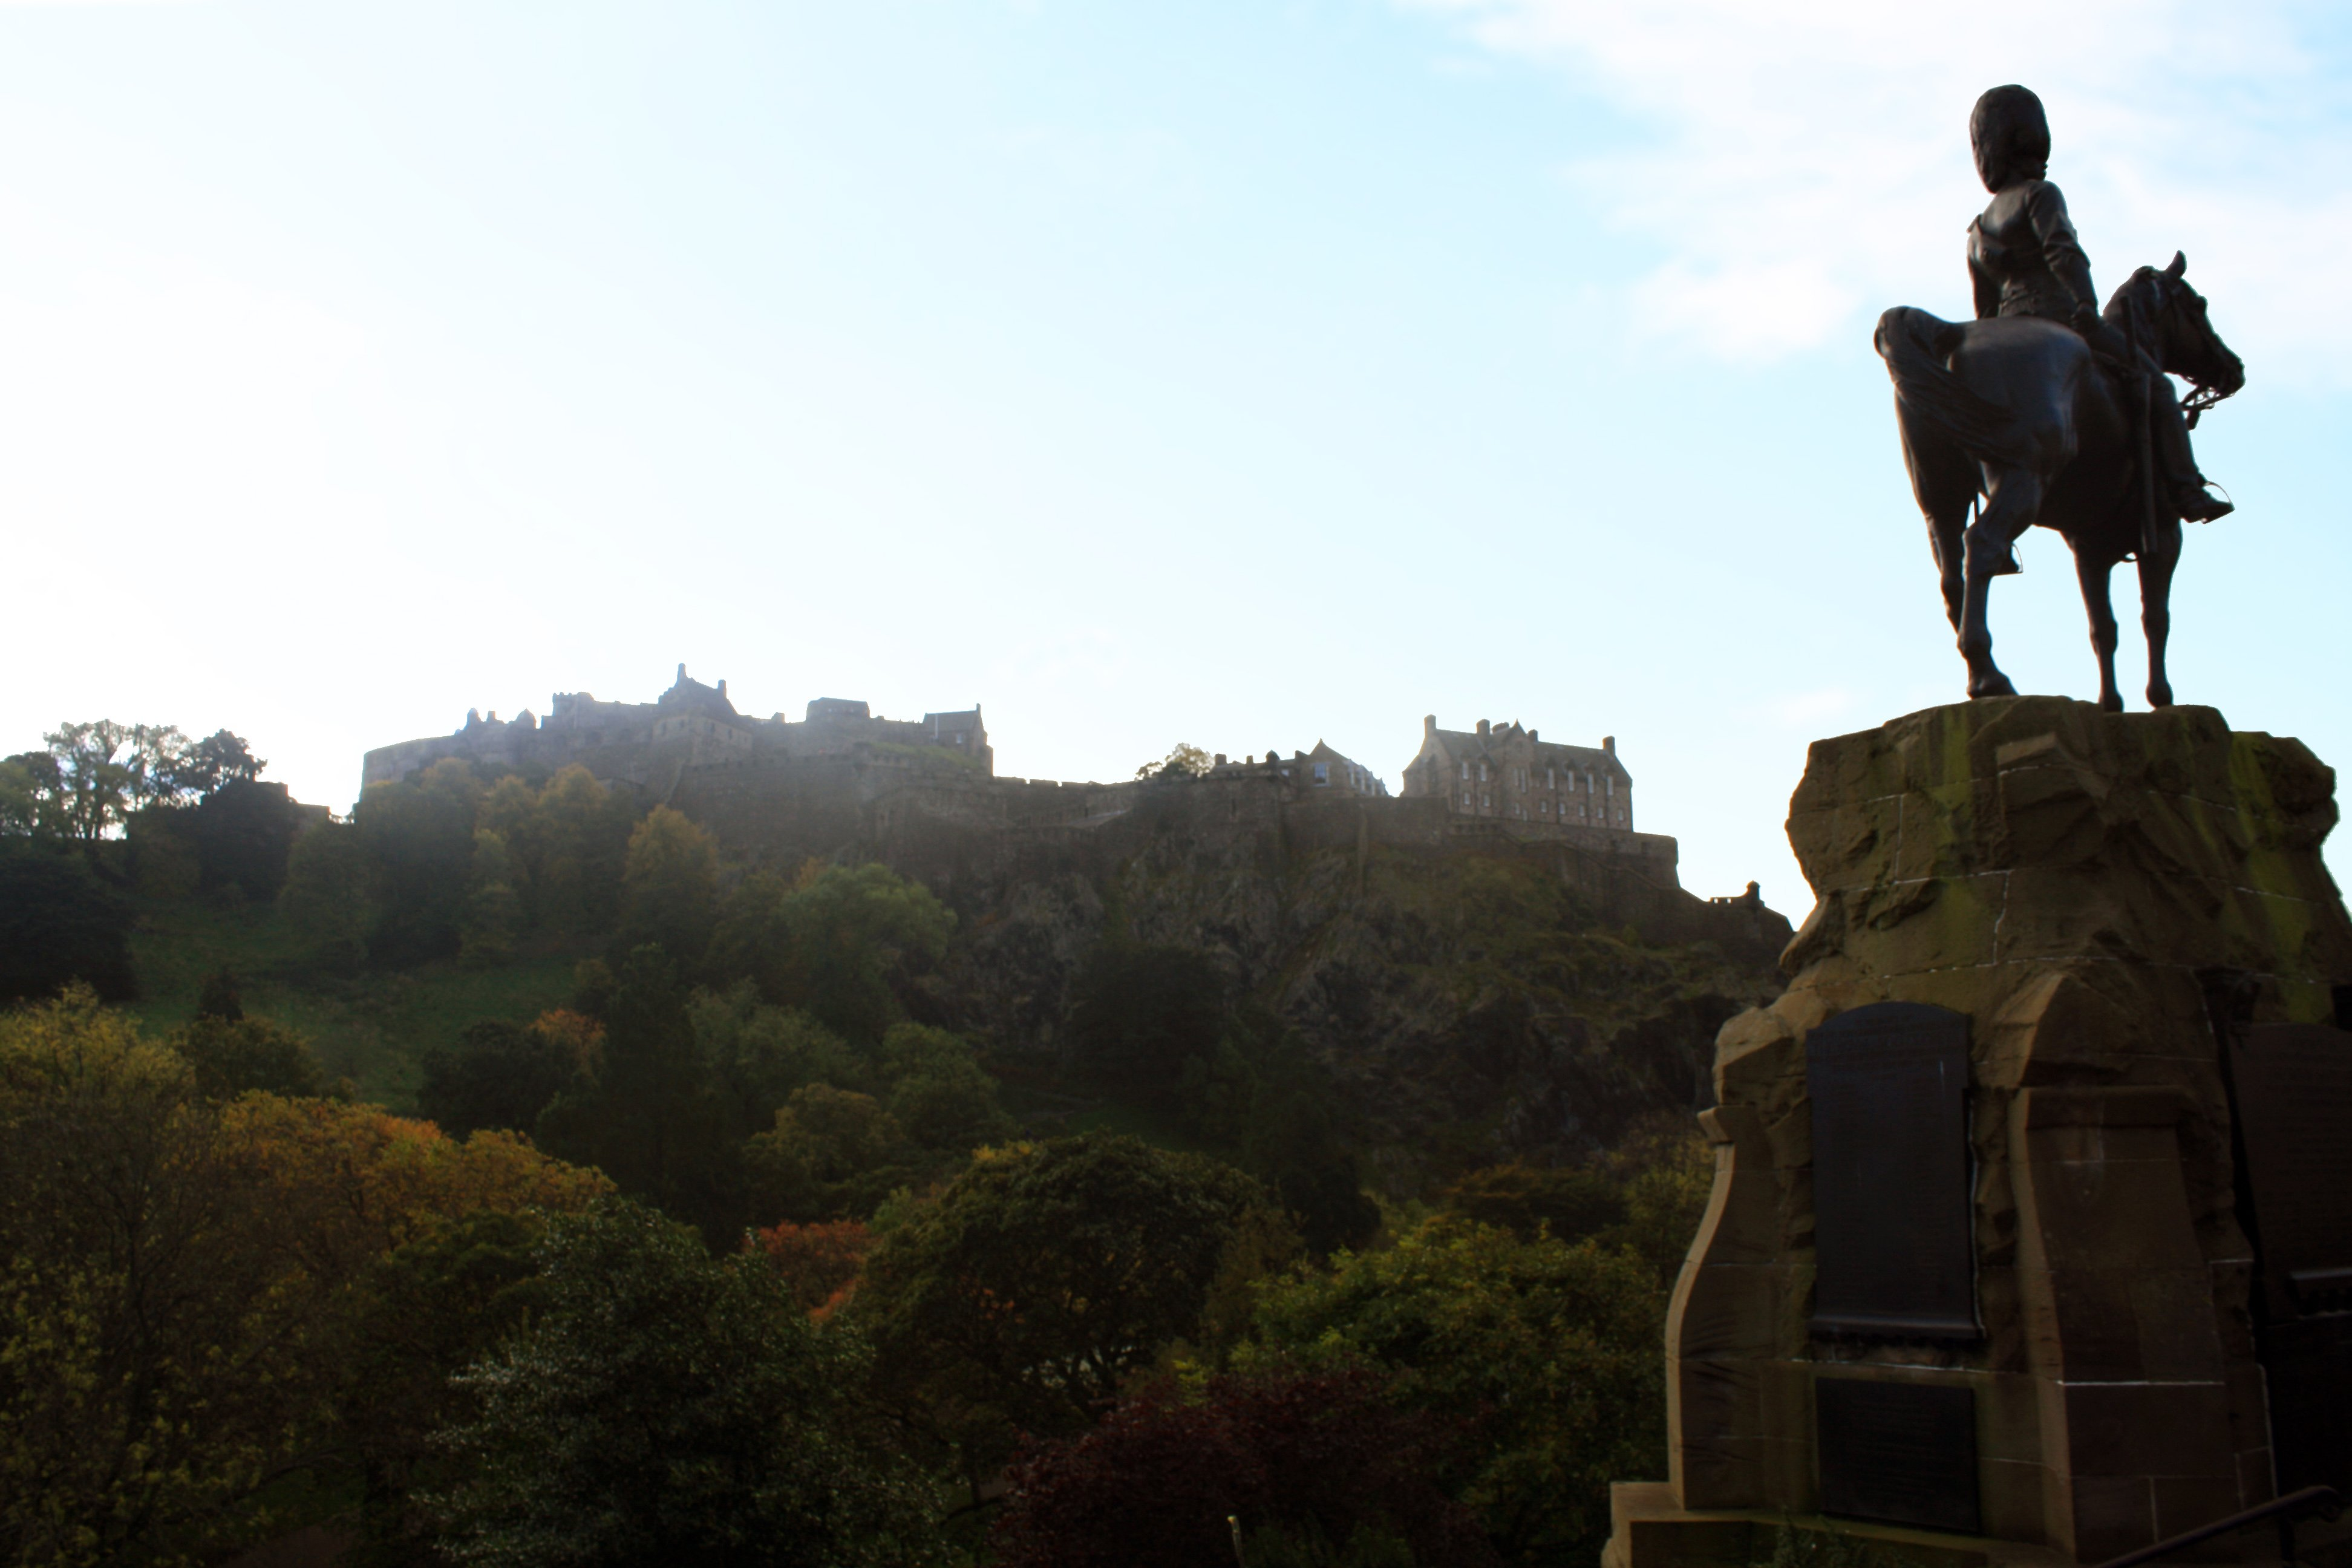 Royal Scots Greys monument with Edinburgh castle